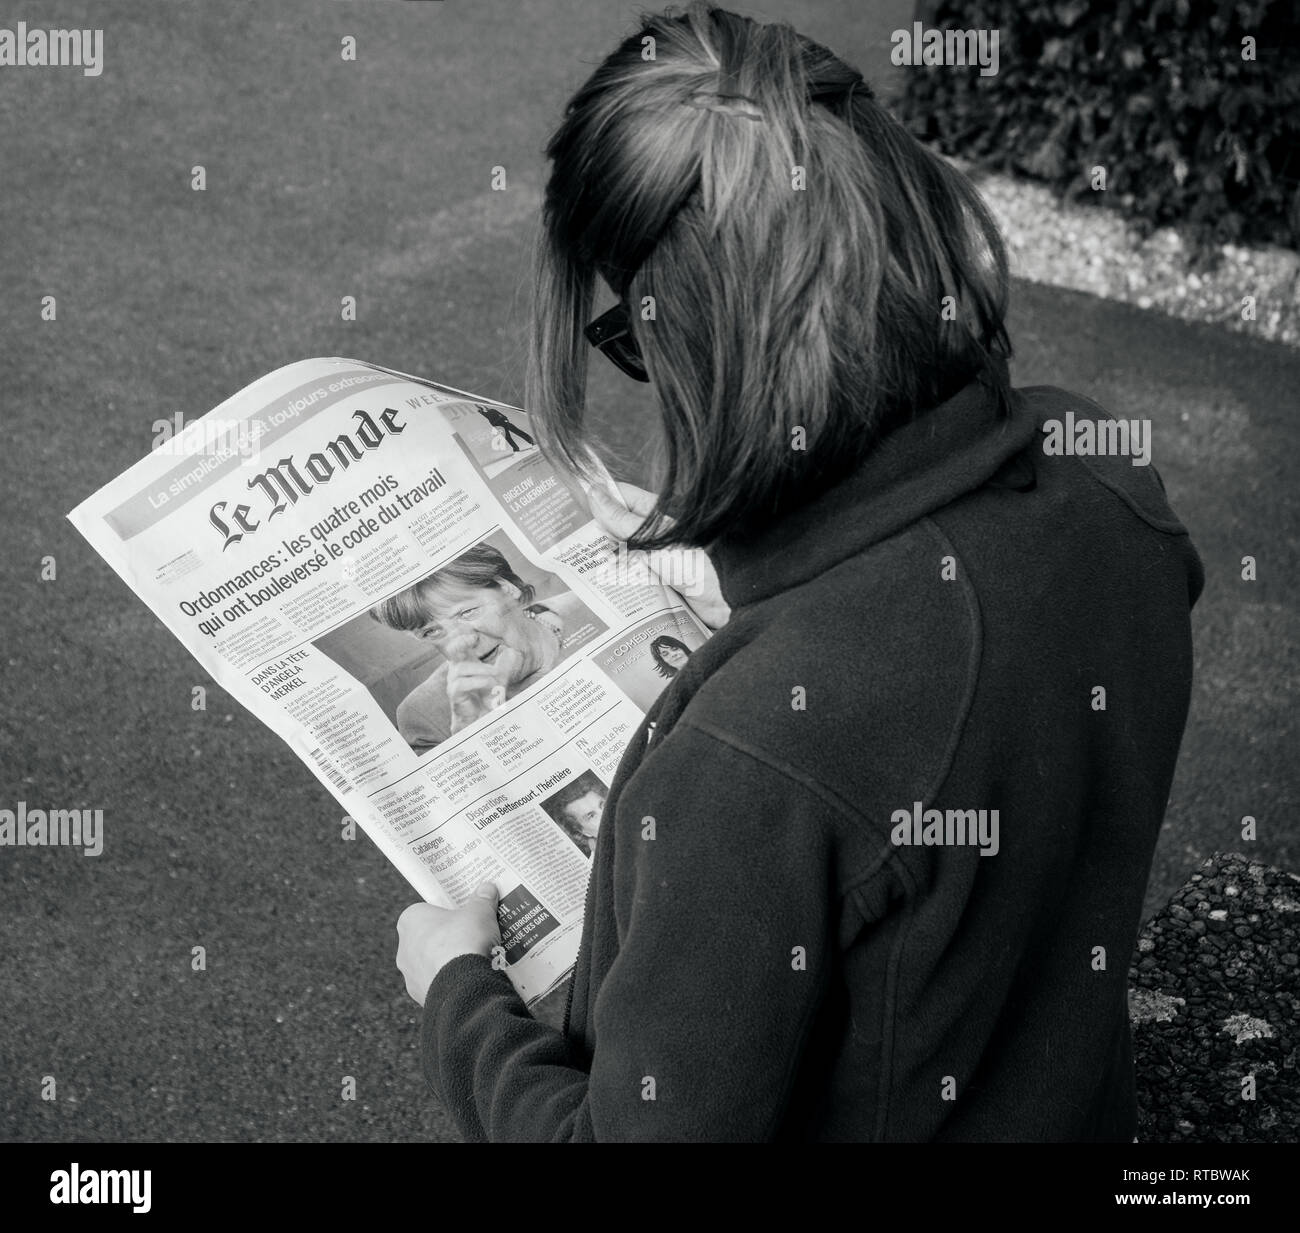 PARIS, FRANCE - SEP 24, 2017: View from above of woman reading latest newspaper Le Monde with portrait of Angela Merkel before the election in Germany for the Chancellor of Germany, the head of the federal government - Stock Image